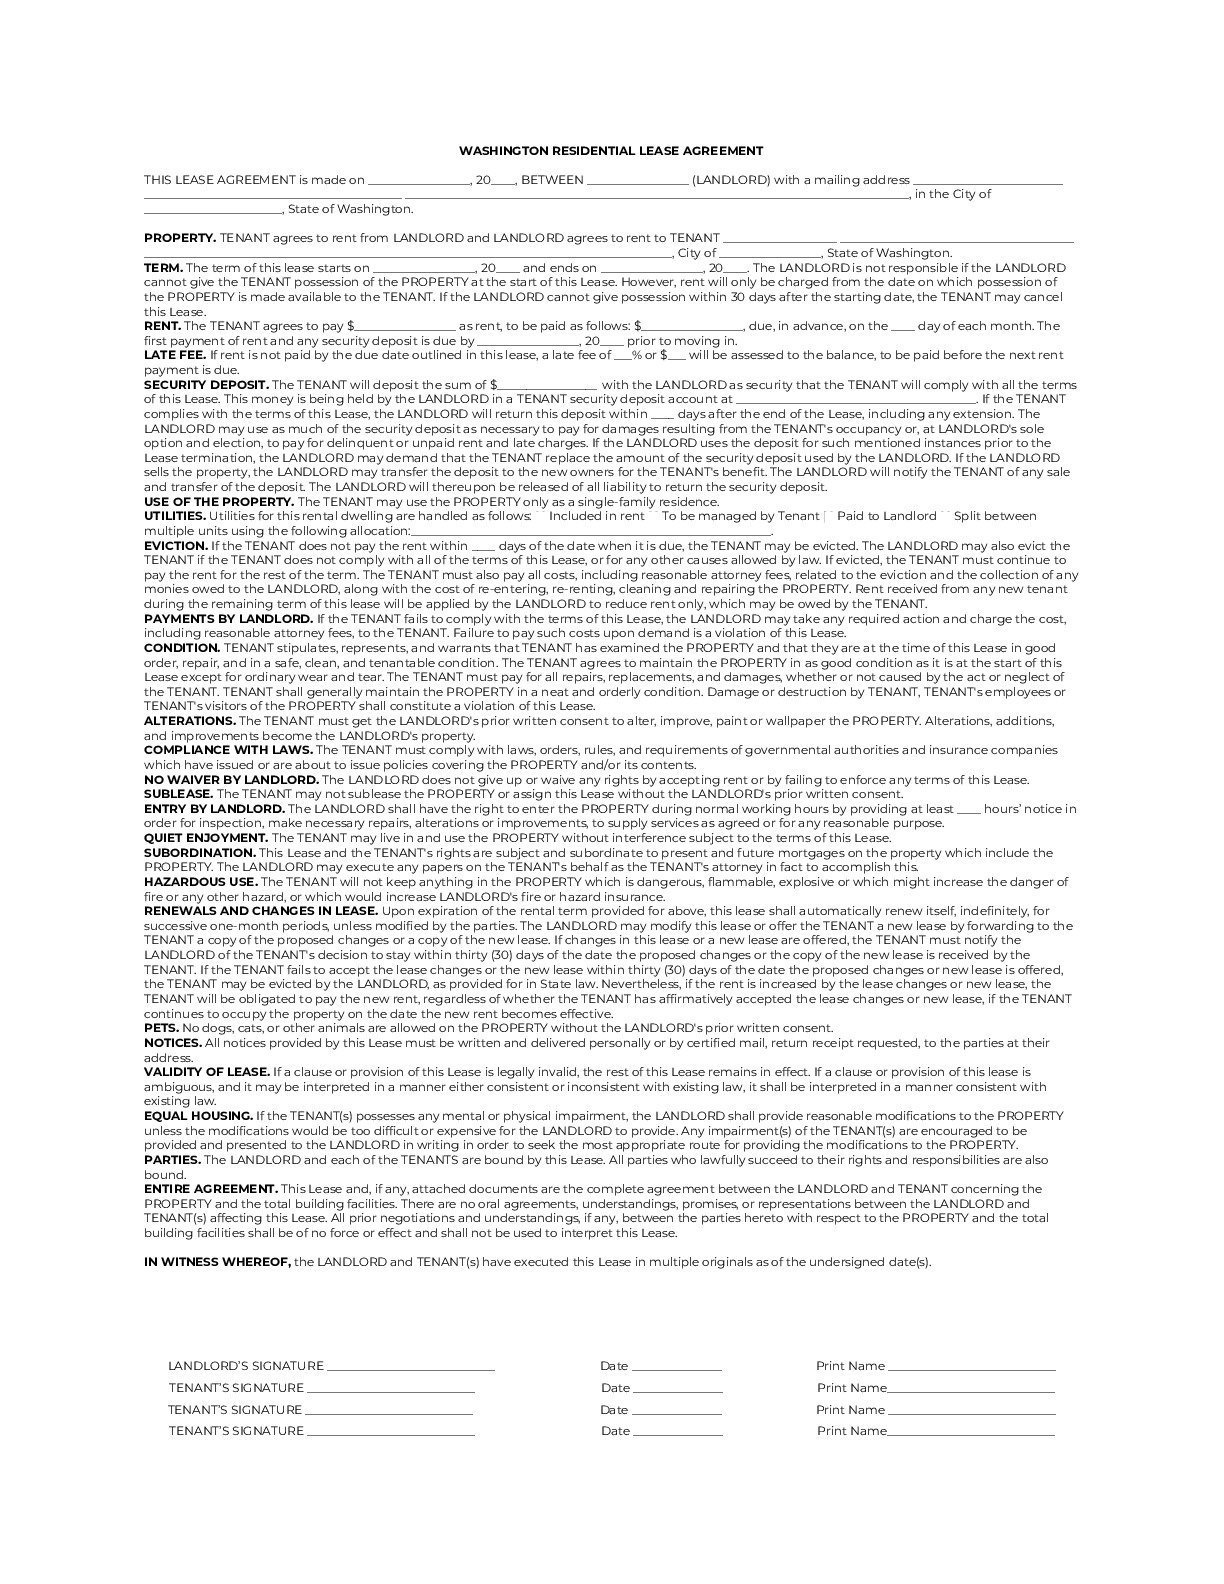 Washington Simple Residential Lease Agreement Template sample